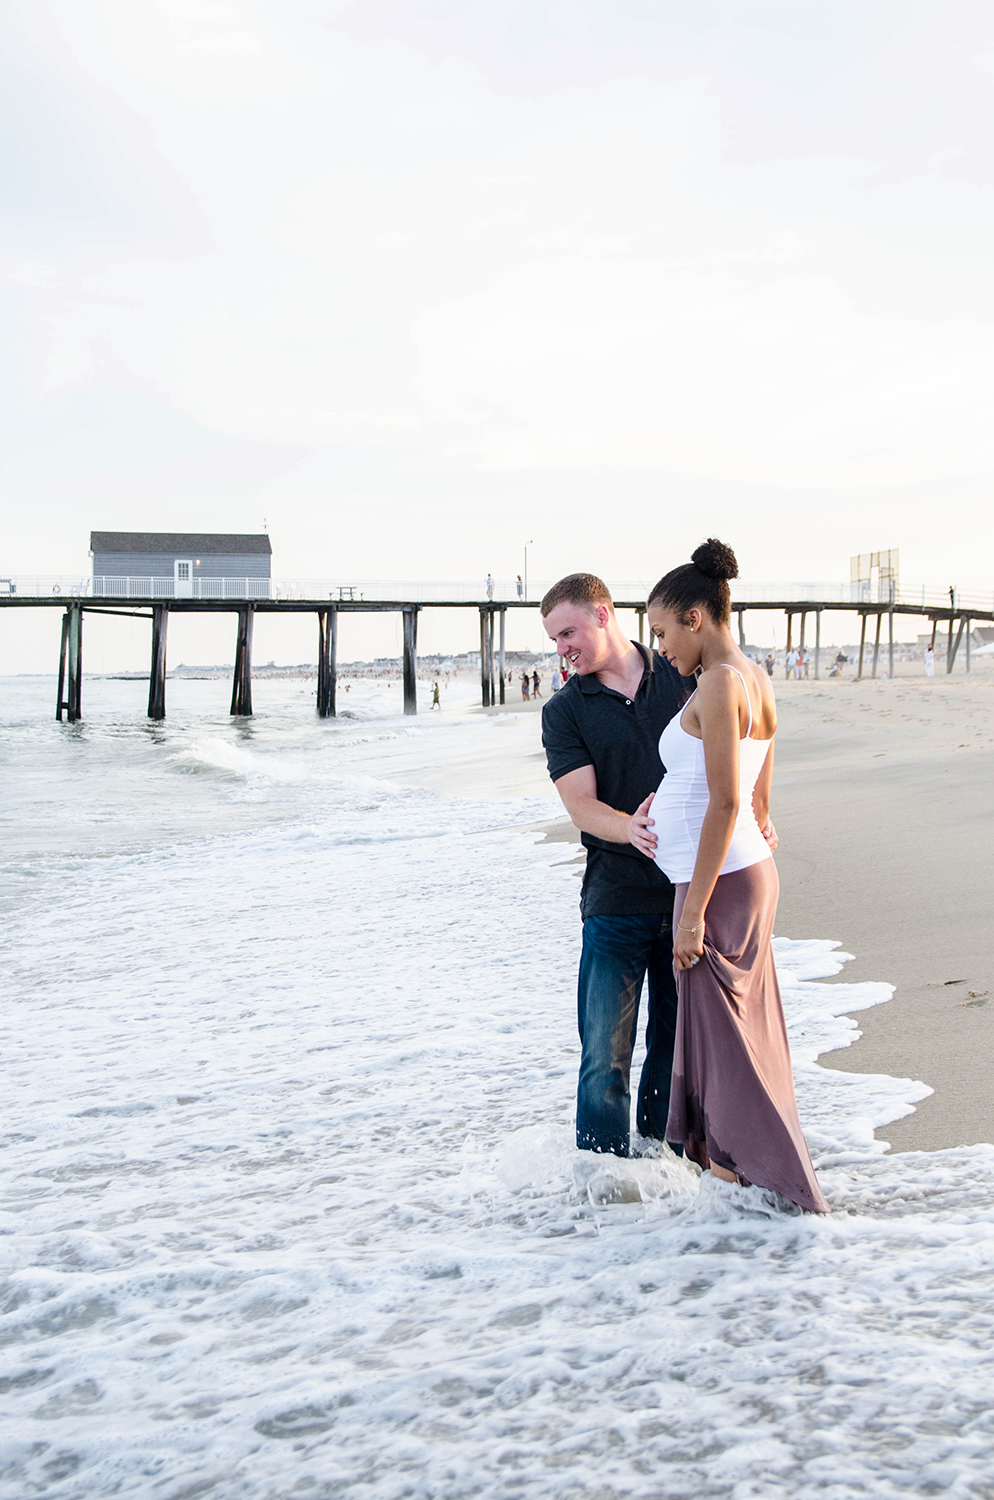 Josh+Ashlee l Beach Sunset Maternity l Avon NJ l Olivia Christina Photography 14 copy.jpg